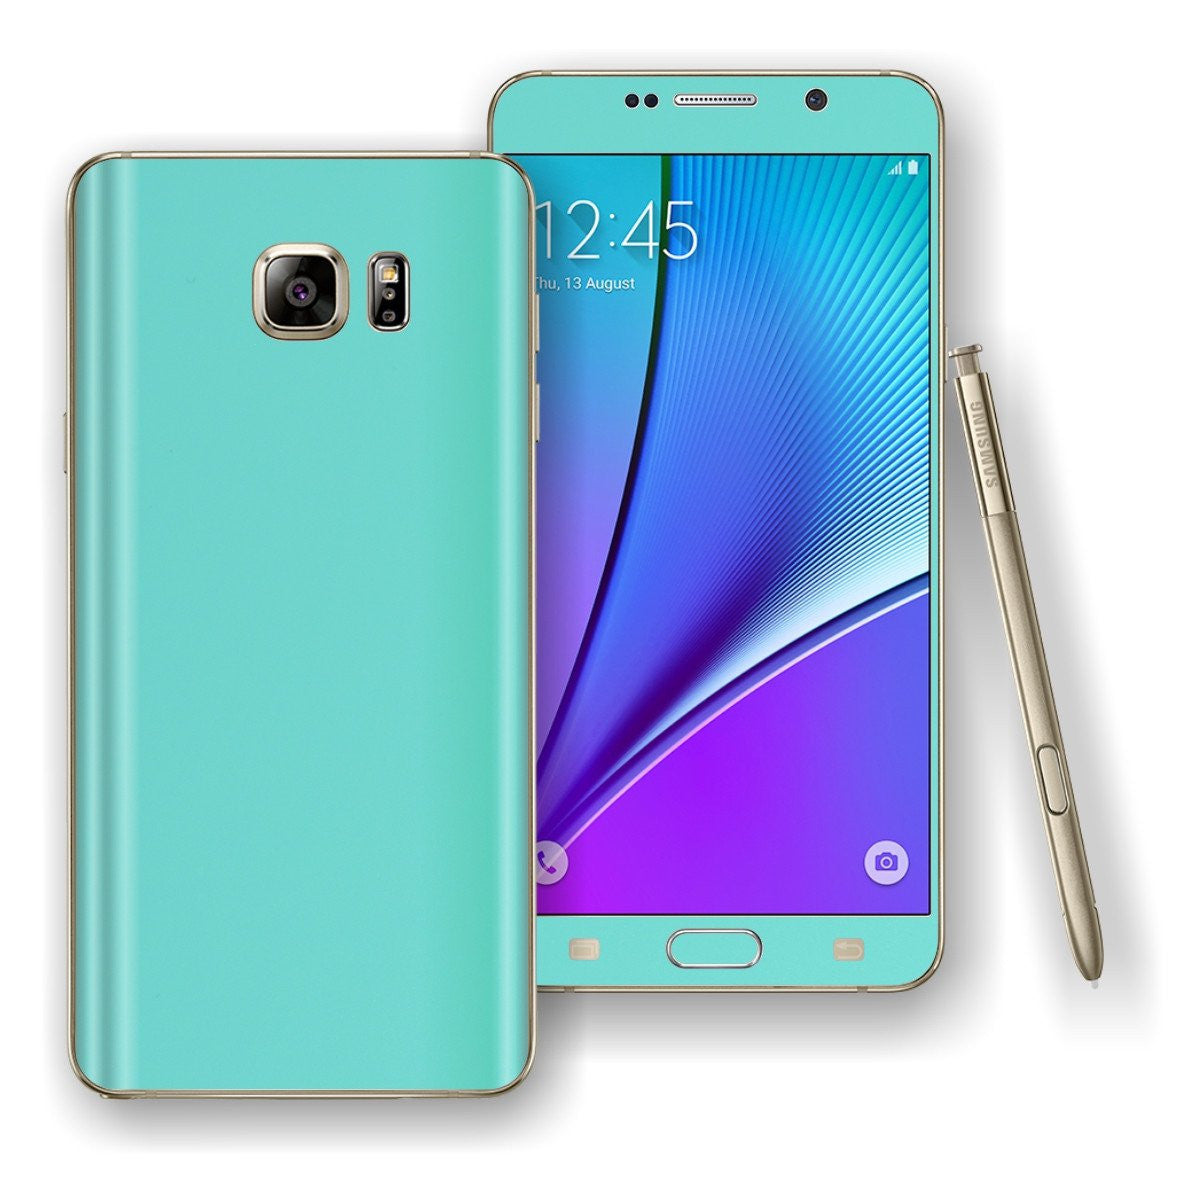 Samsung Galaxy NOTE 5 Mint Matt Skin Wrap Decal Cover Protector by EasySkinz